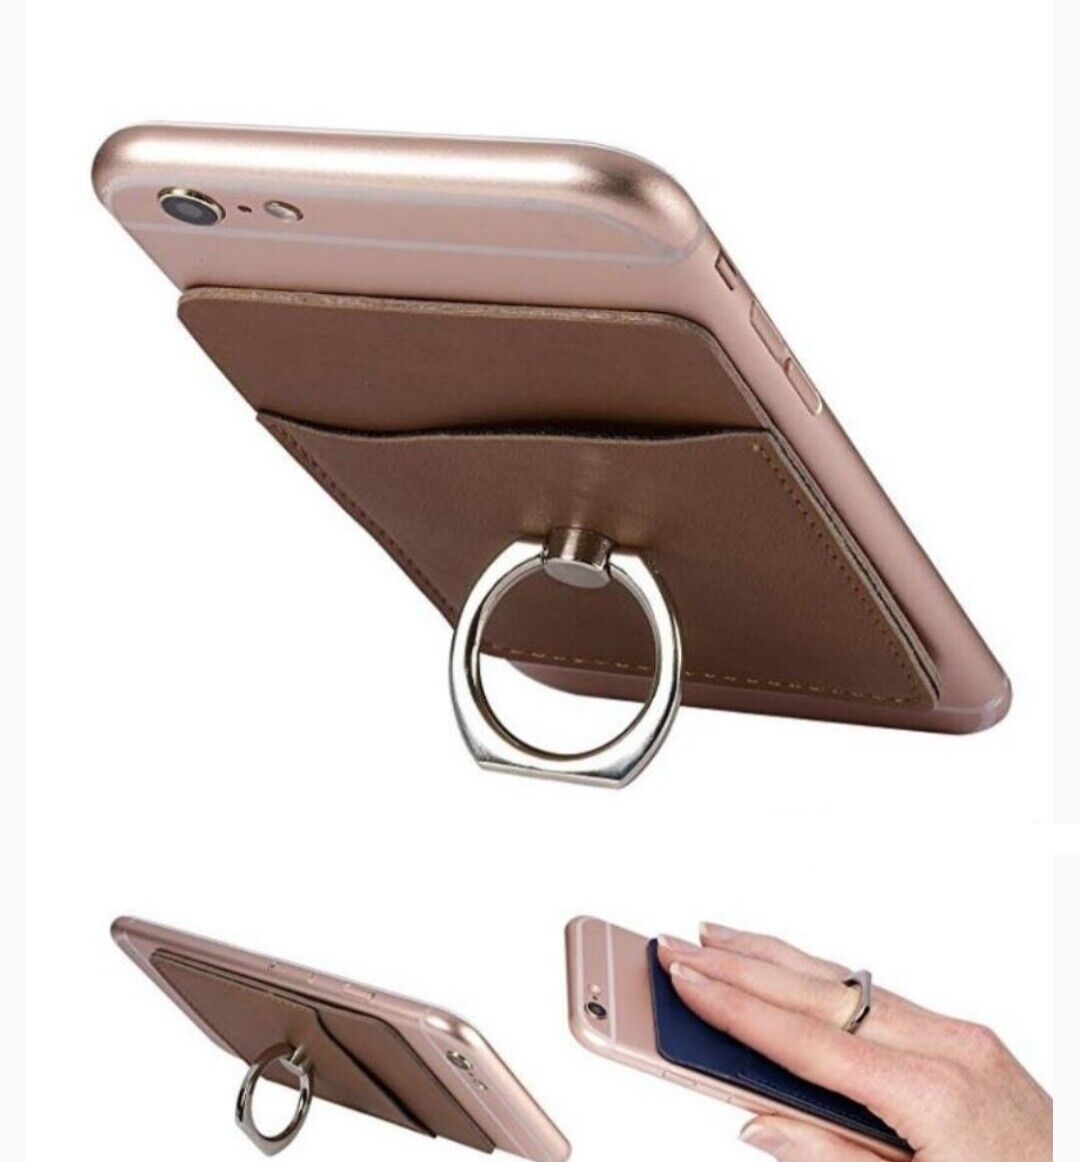 Universal Leather Credit Card Holder Cell Phone Wallet Pouch